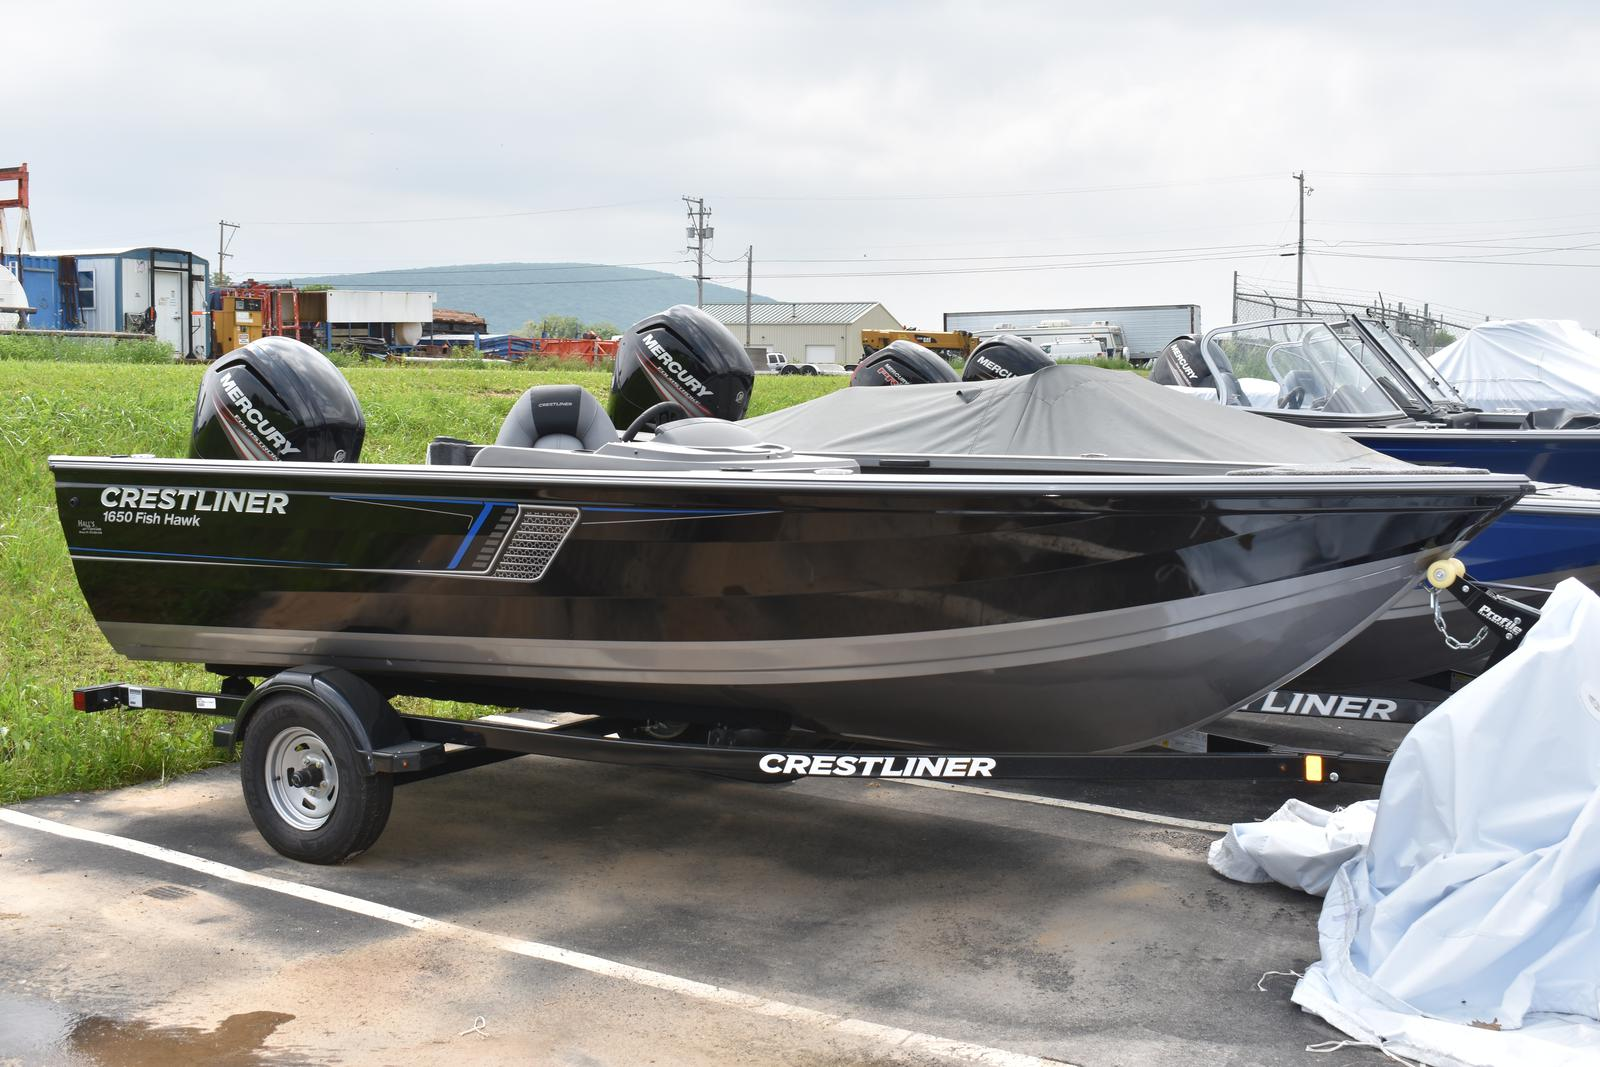 2018 Crestliner 1650 Fish Hawk SC for sale in Muncy, PA | Hall's Marine  (570) 935-0159